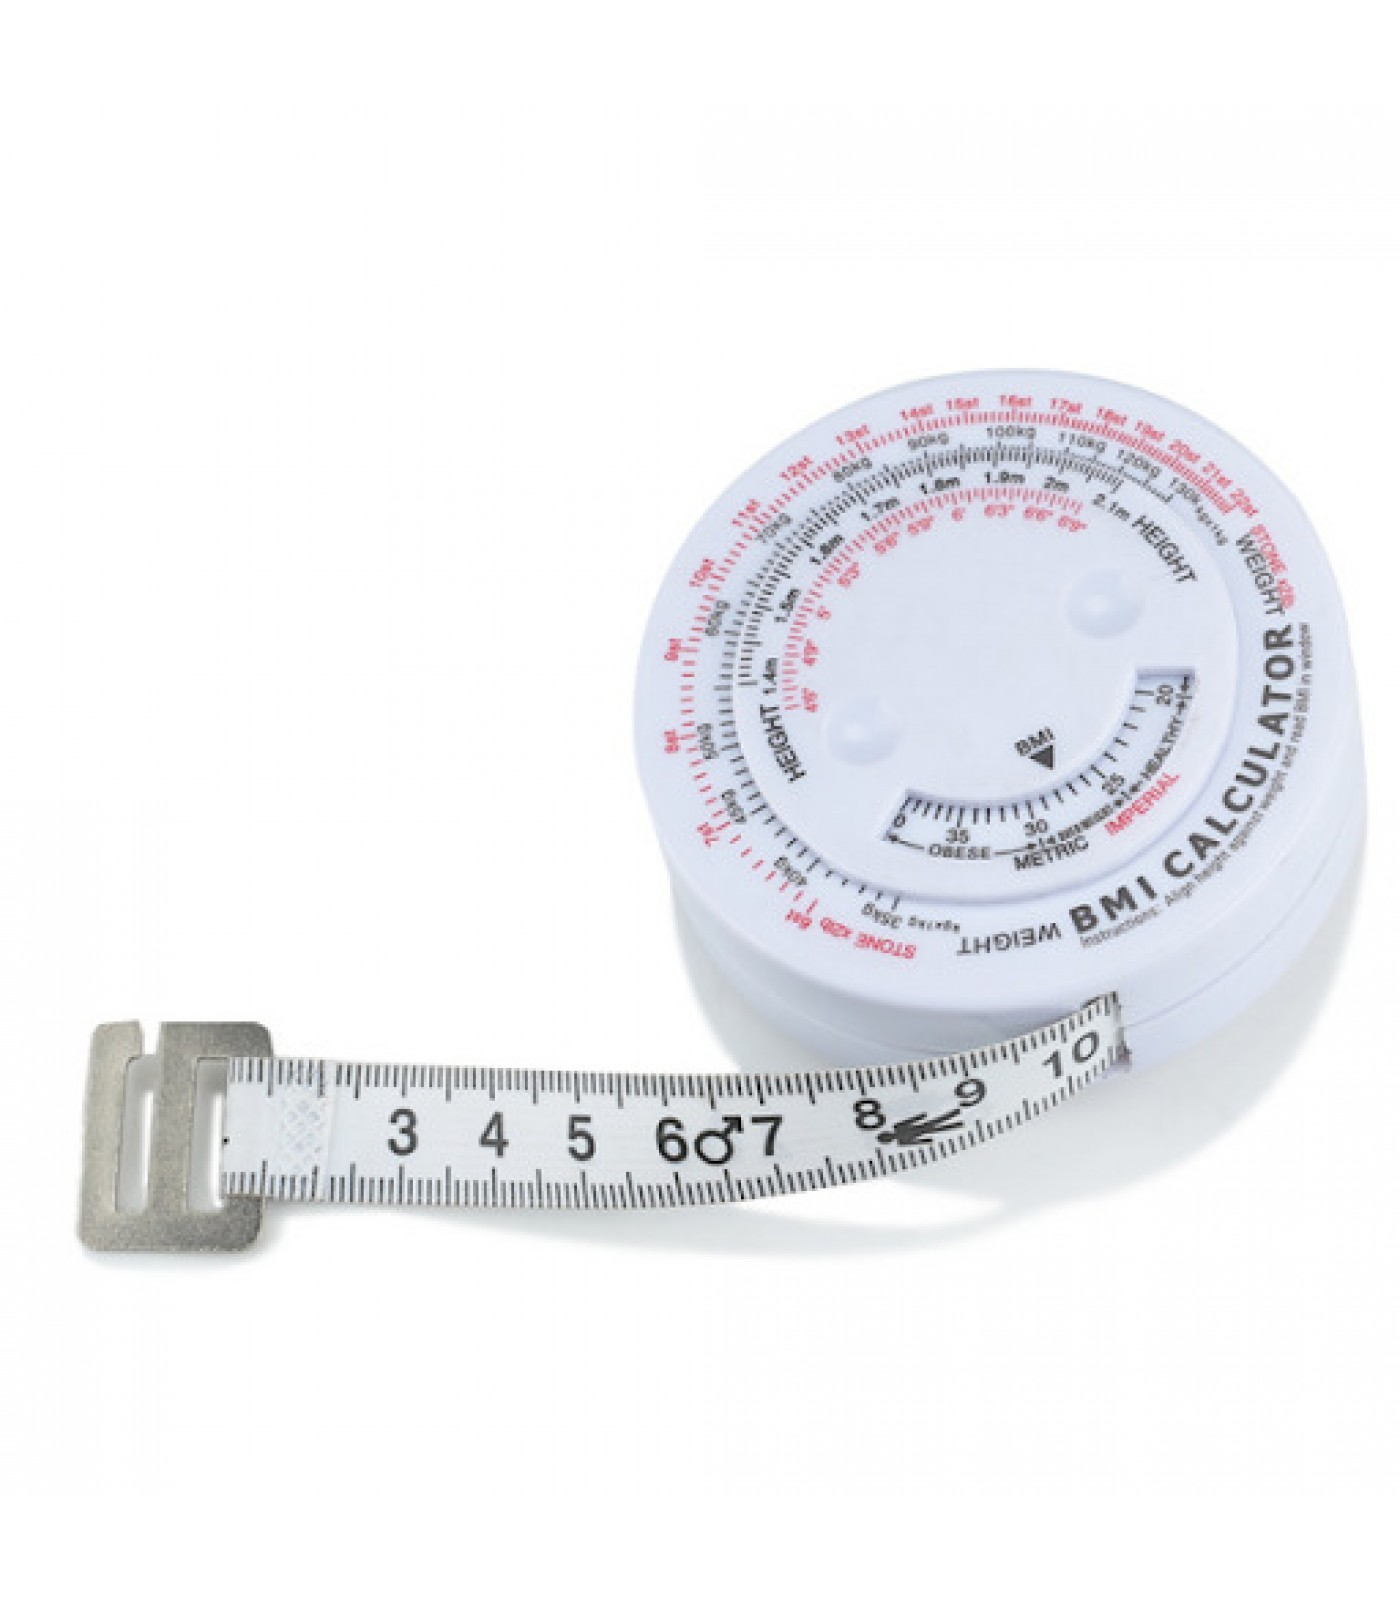 SWEDISH Supplements - Body Mass Index Measure Device